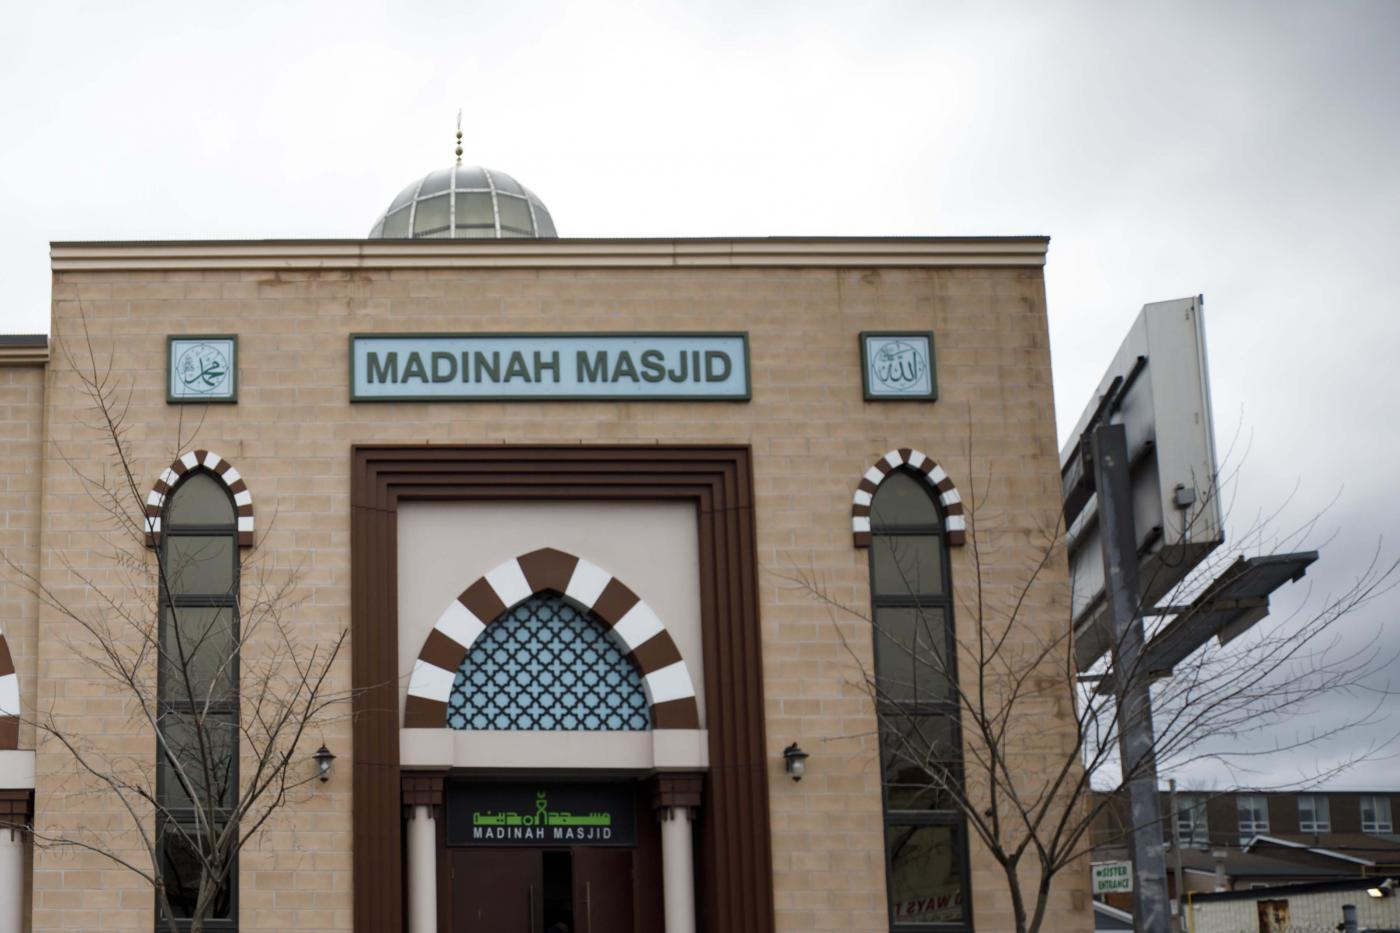 Tensions Erupt in Canadian City Over Broadcast of Muslim Call to Prayer